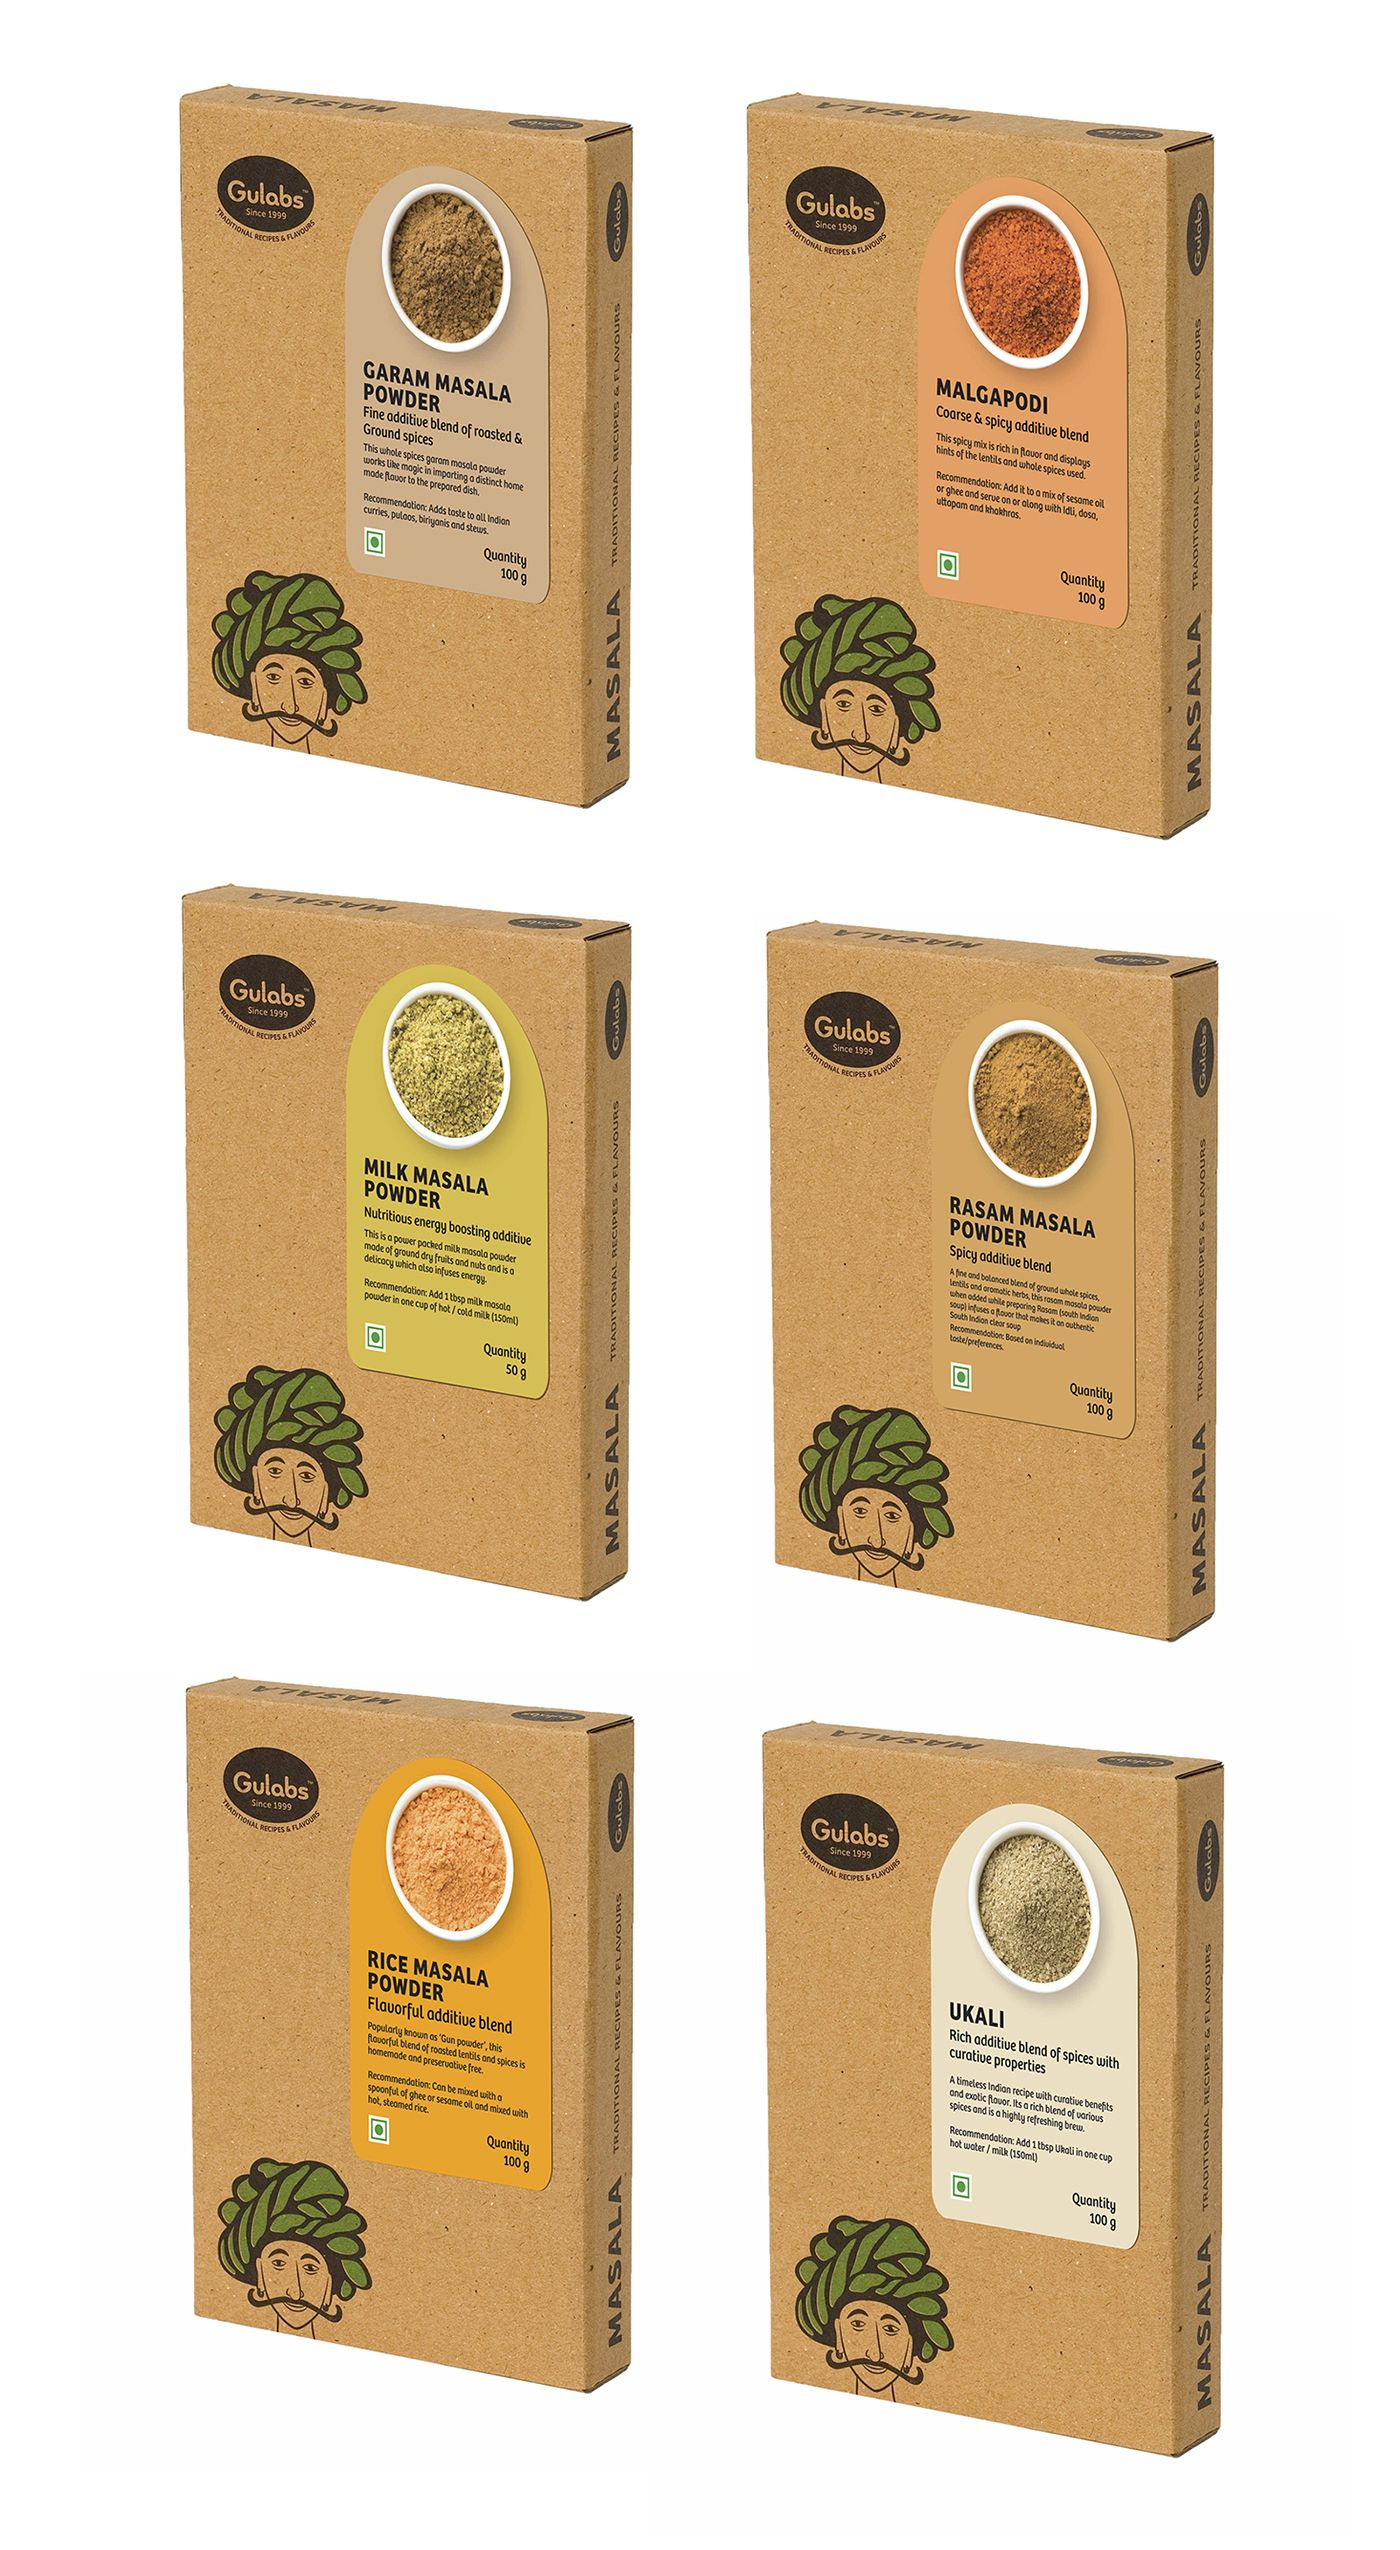 Mobile Foodie Survival Kit Spices Packaging Design Packaging Design Pinterest Packaging